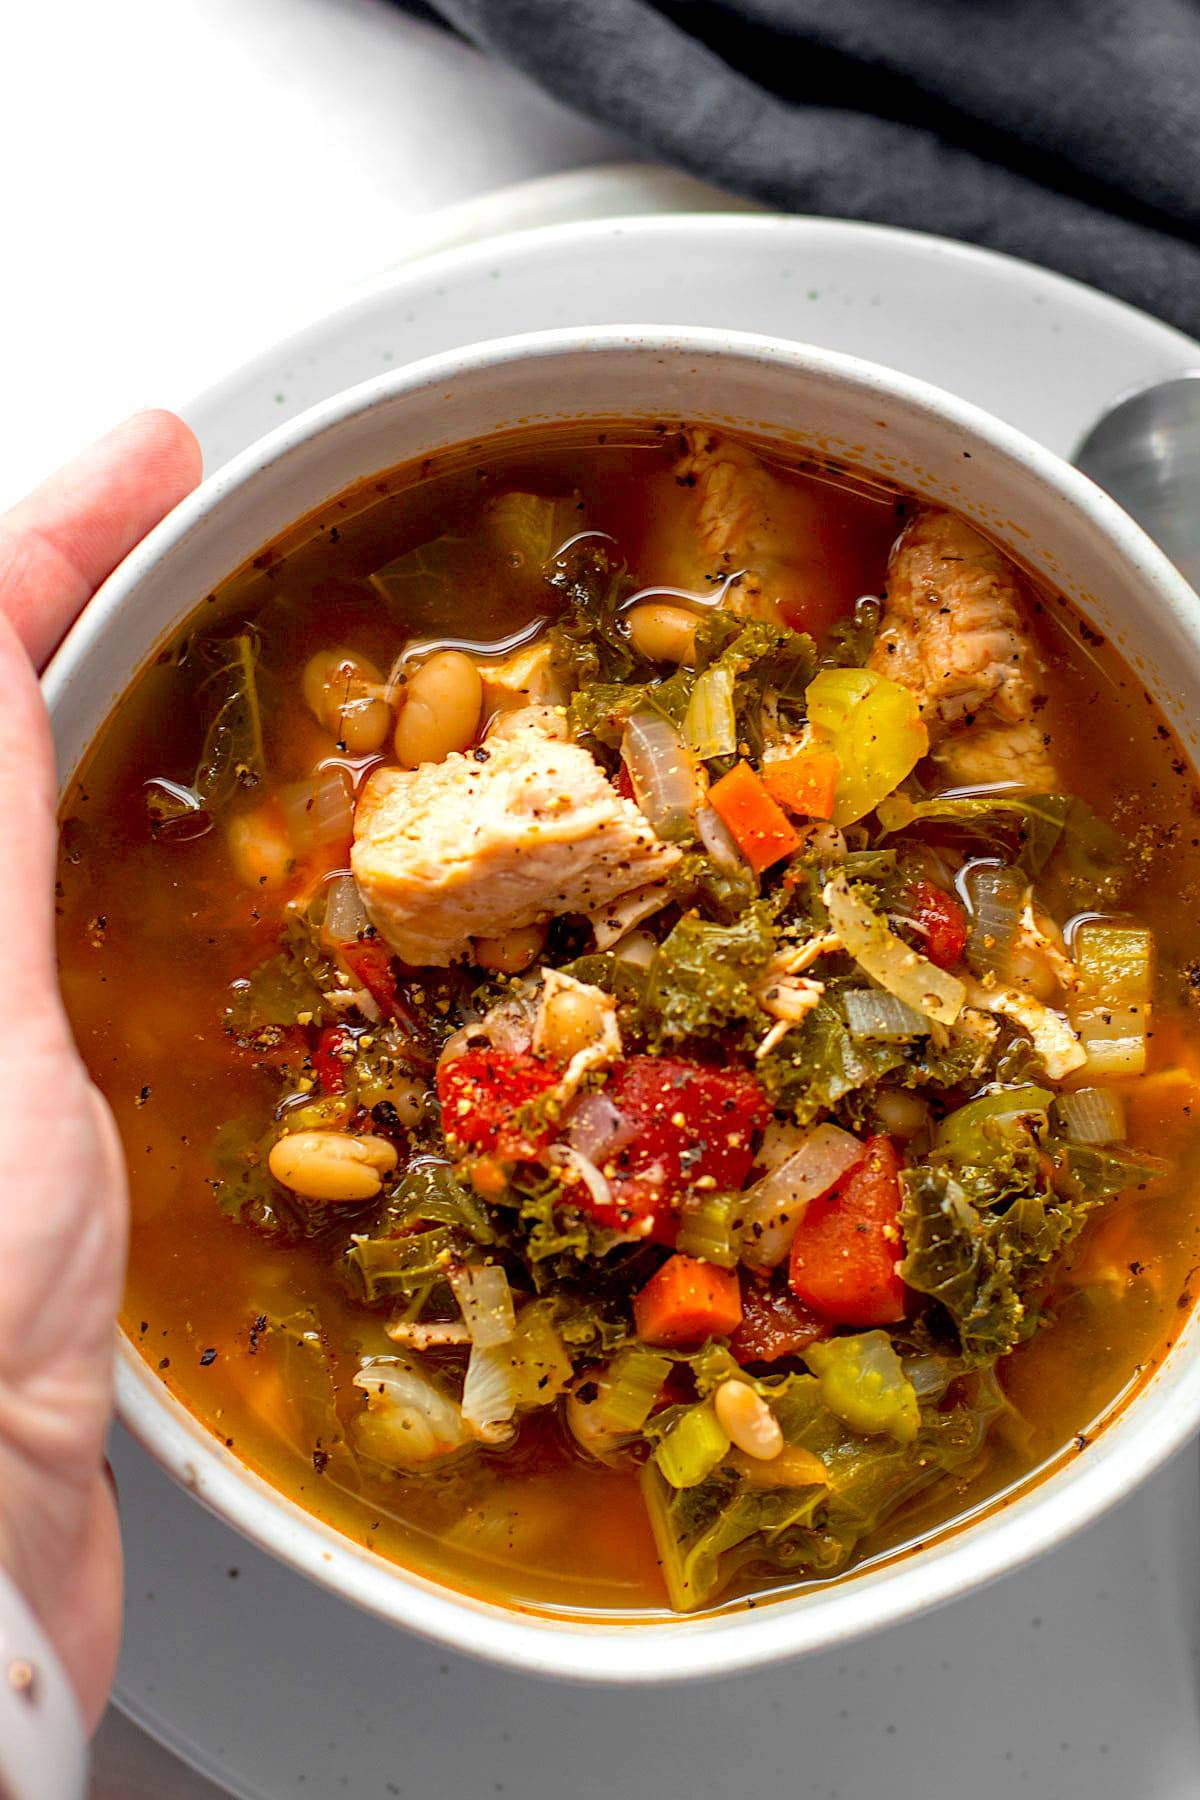 A bowl of turkey kale soup with tomatoes in a bowl.